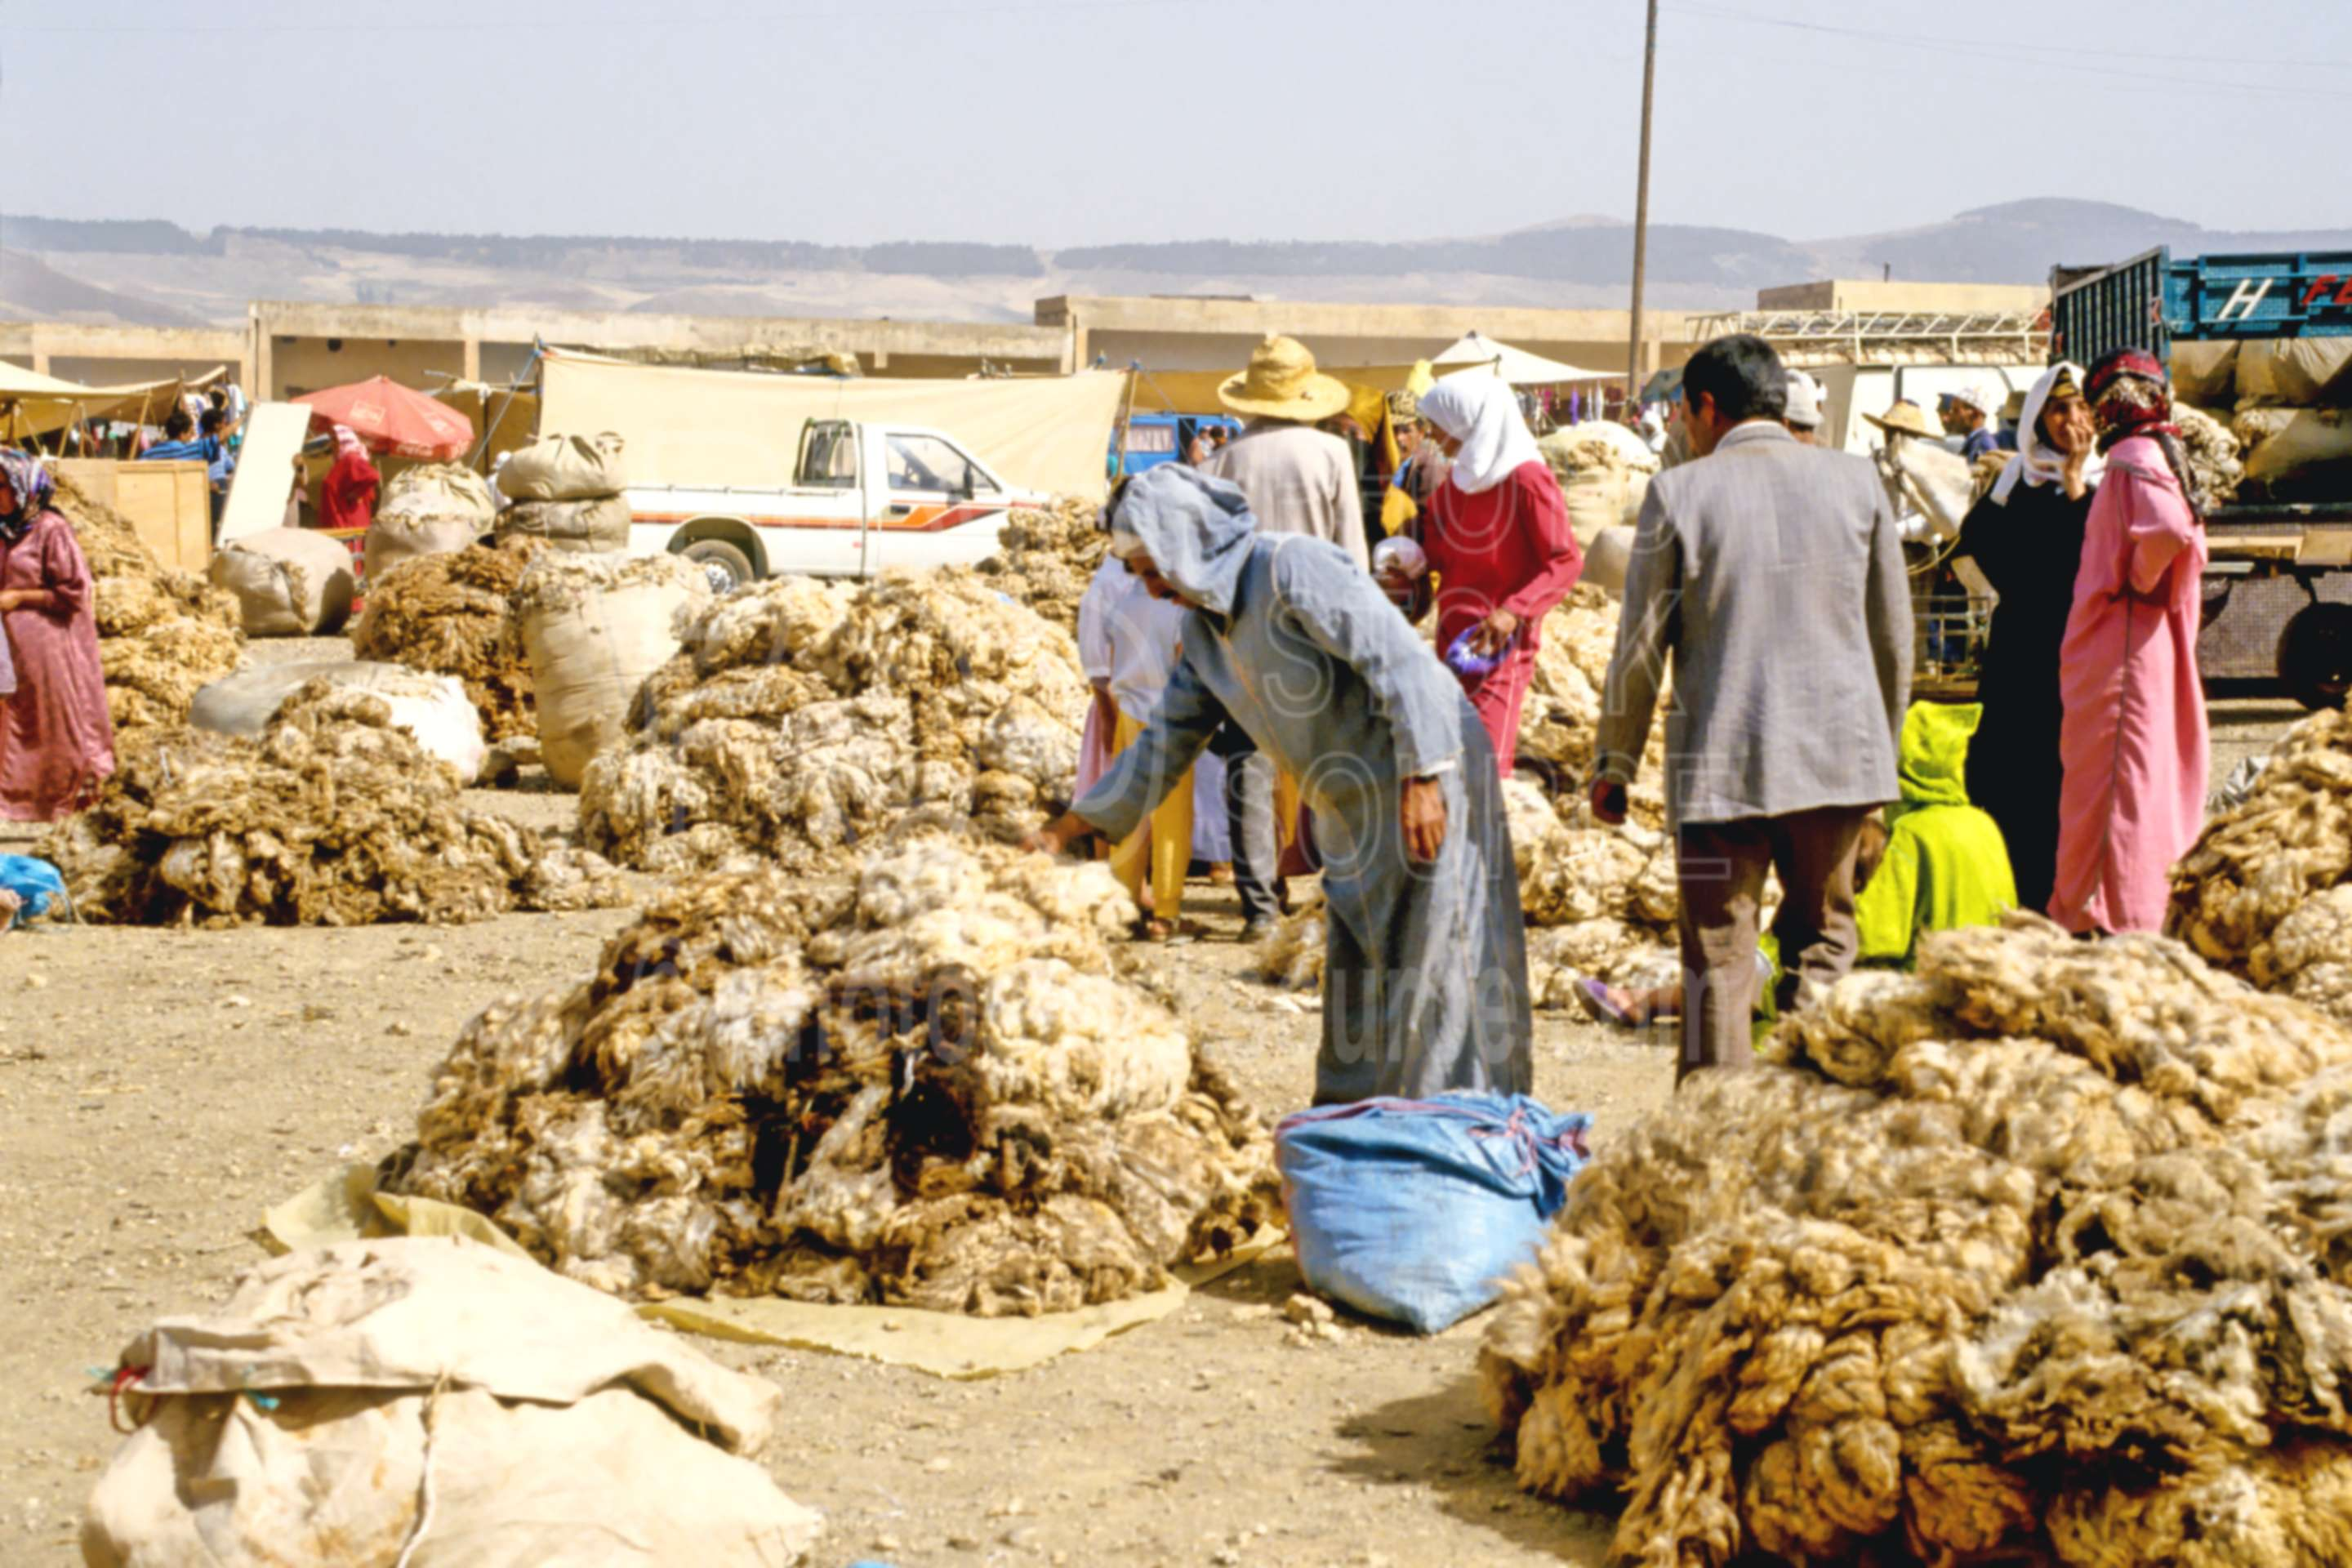 Berber Wool Market,animal,market,mens,sell,sheep,wool,morocco markets